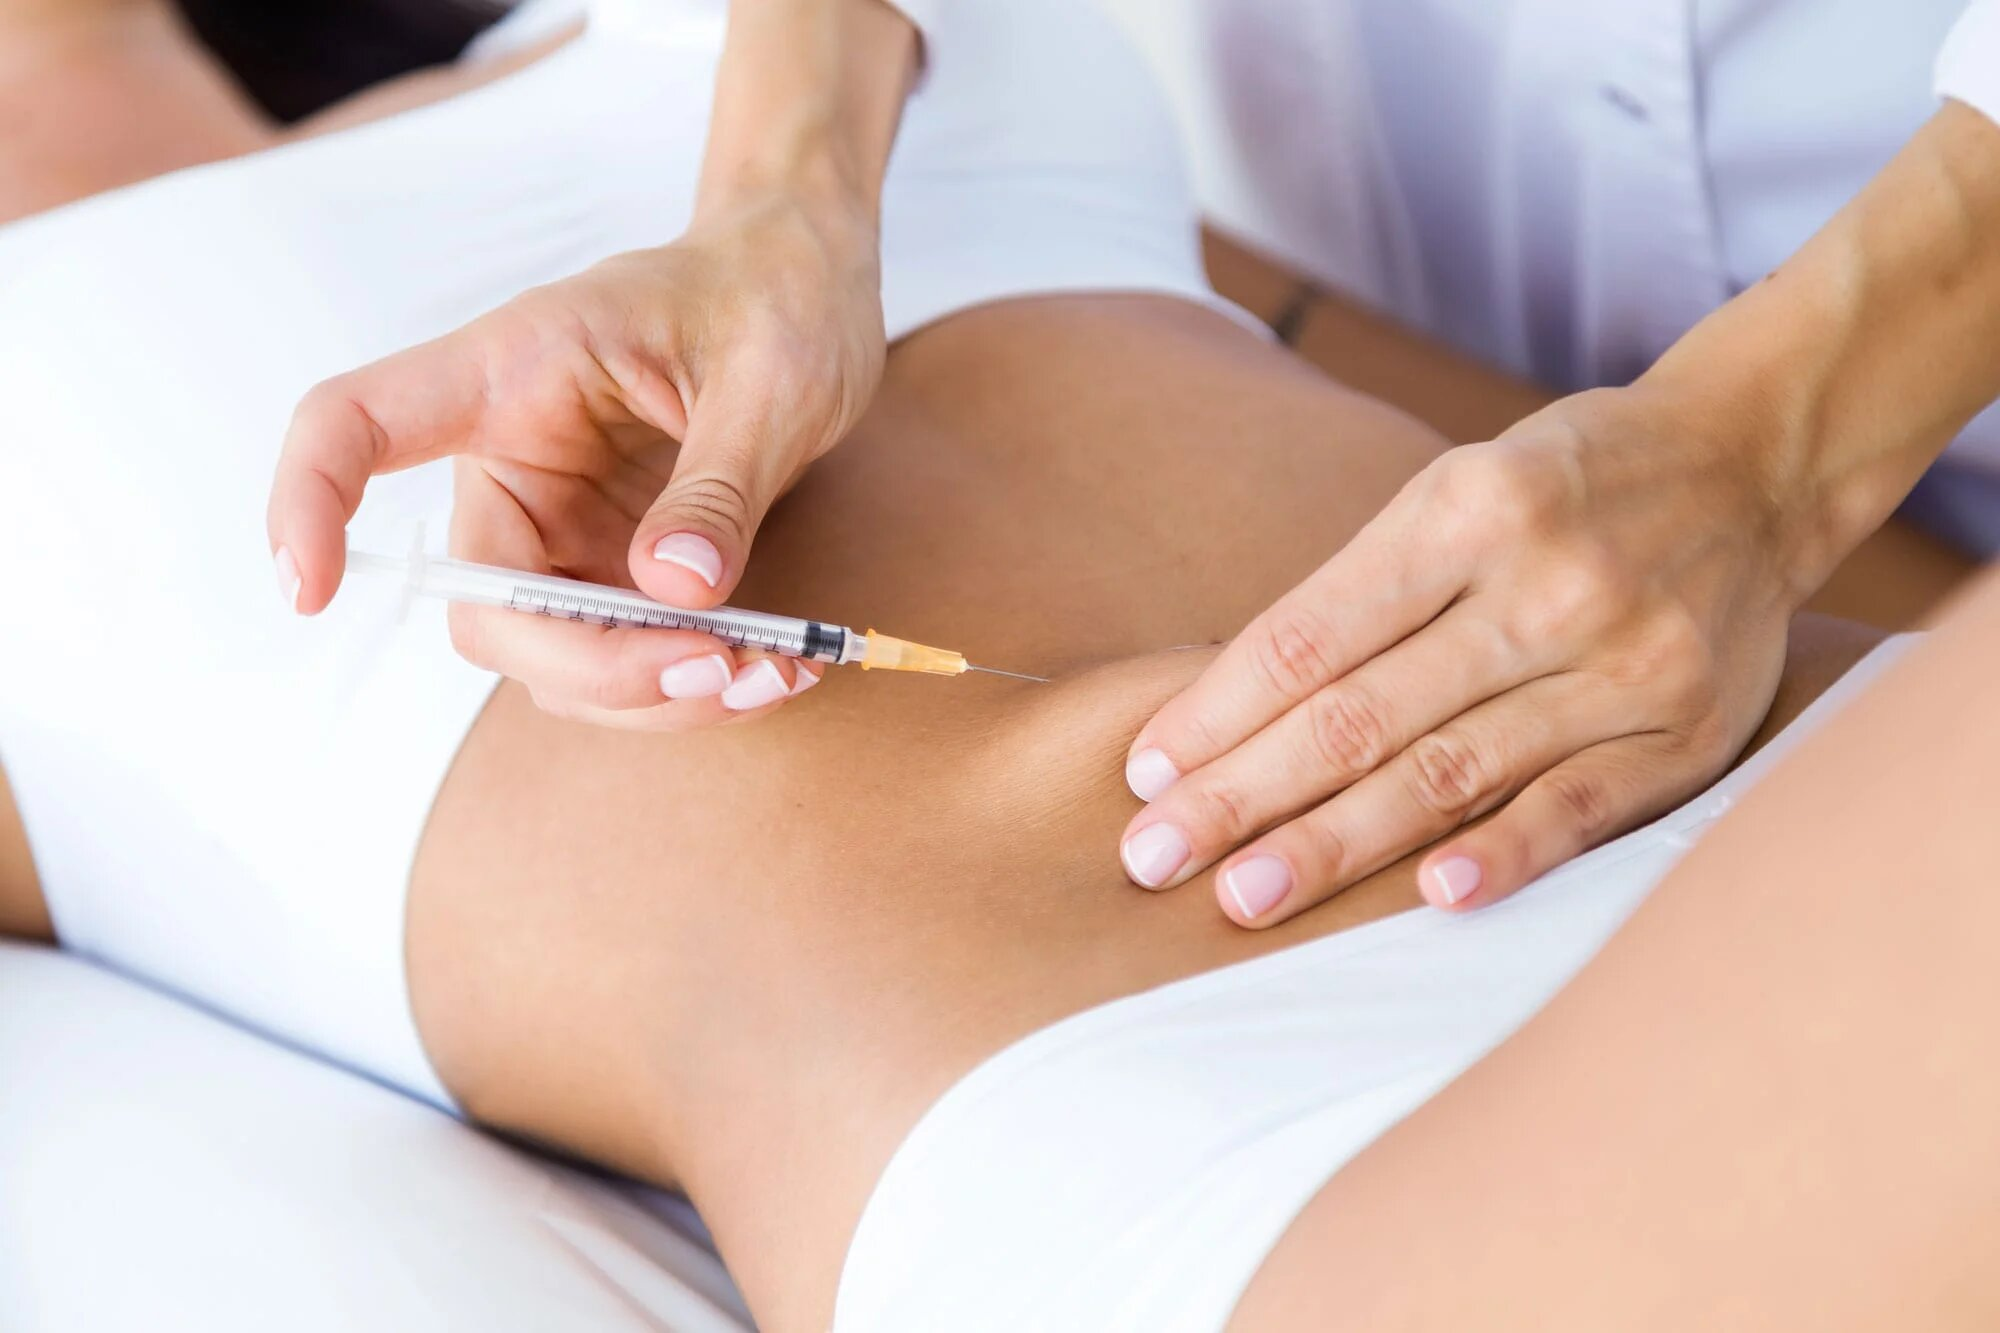 Female patient receiving needle injection in her abdominal section